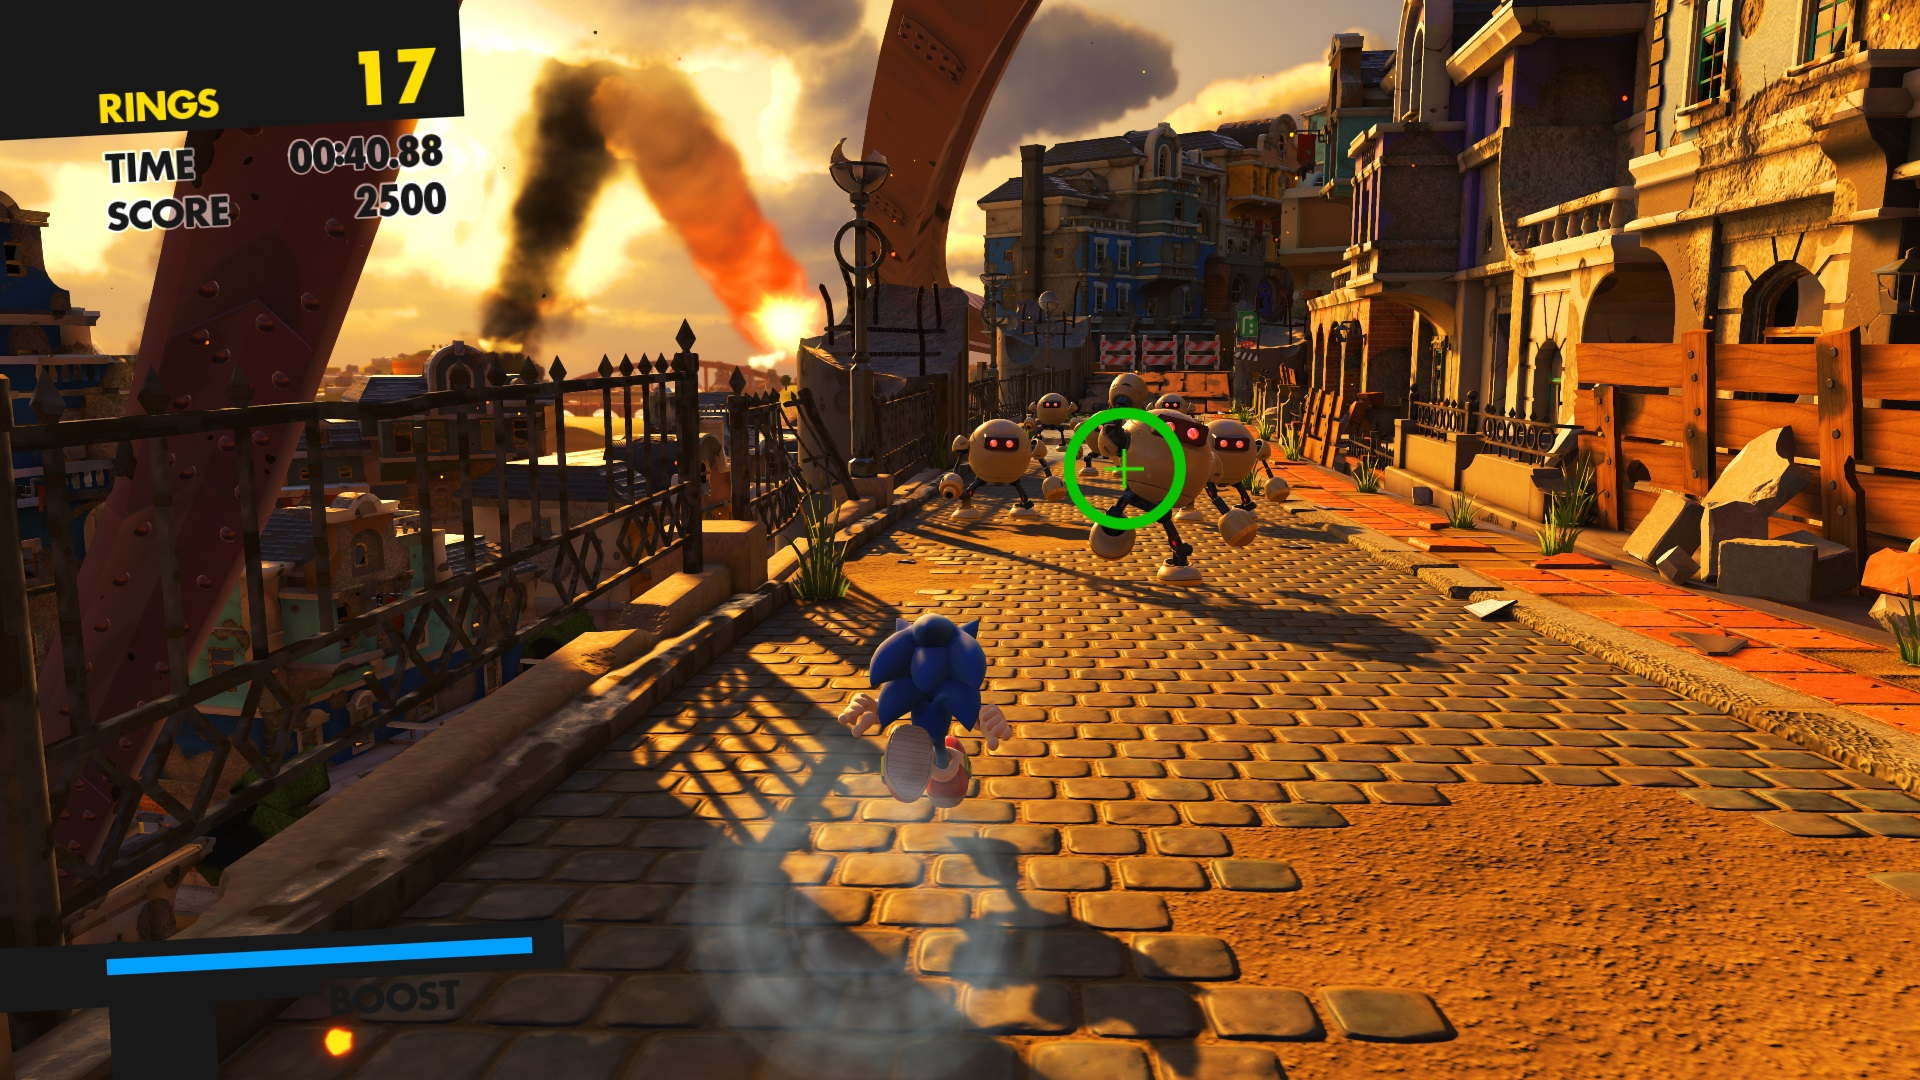 New Sonic Game For Ps4 : Sonic forces on ps4 official playstation™store malaysia